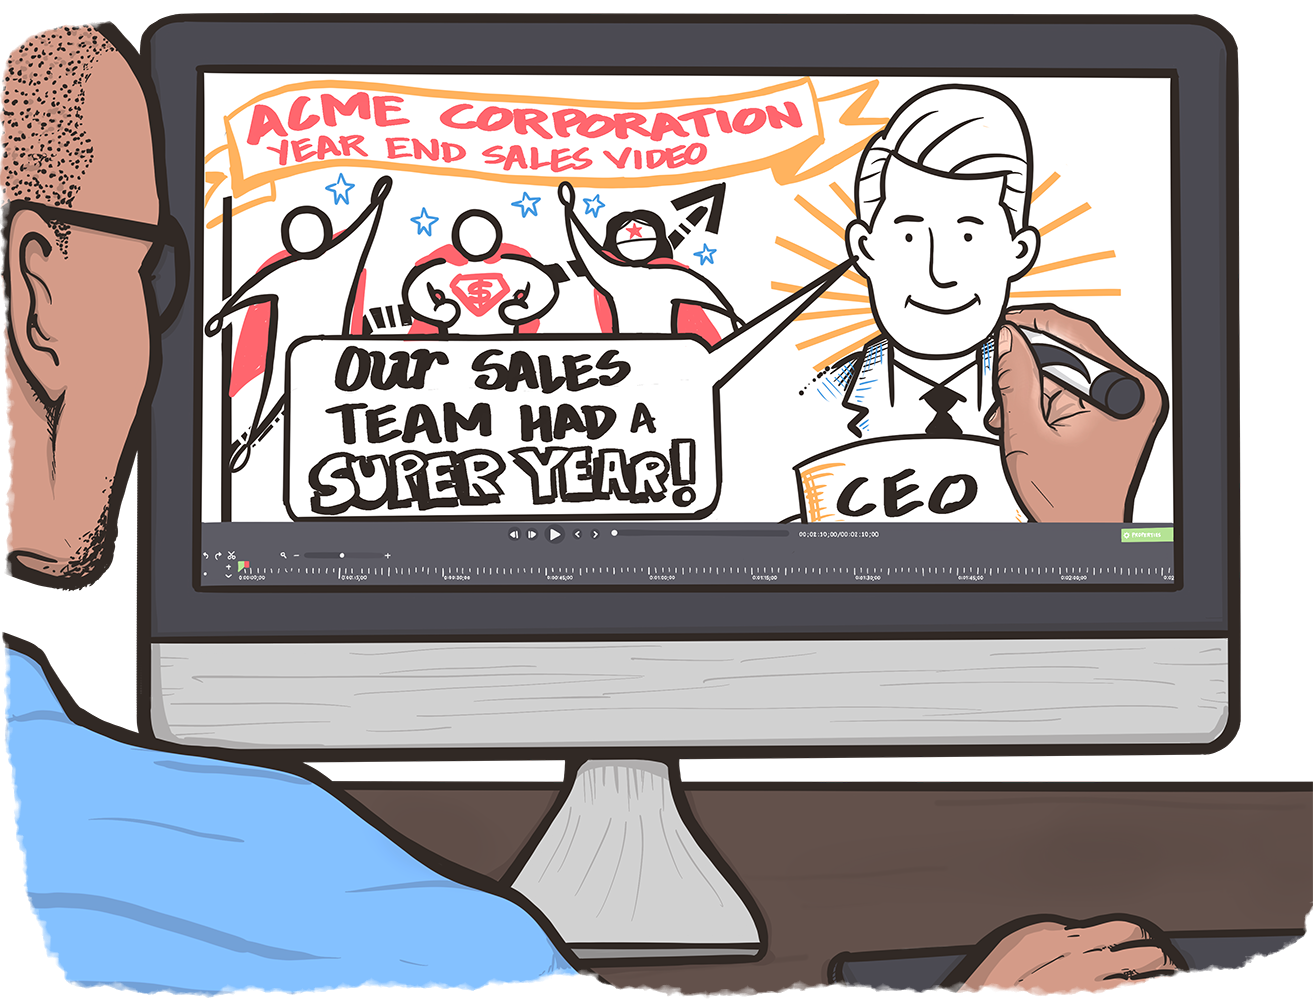 Whiteboard Animation Services are Animated representation of key ideas that convey creativity, innovation and fun in an illustrated video